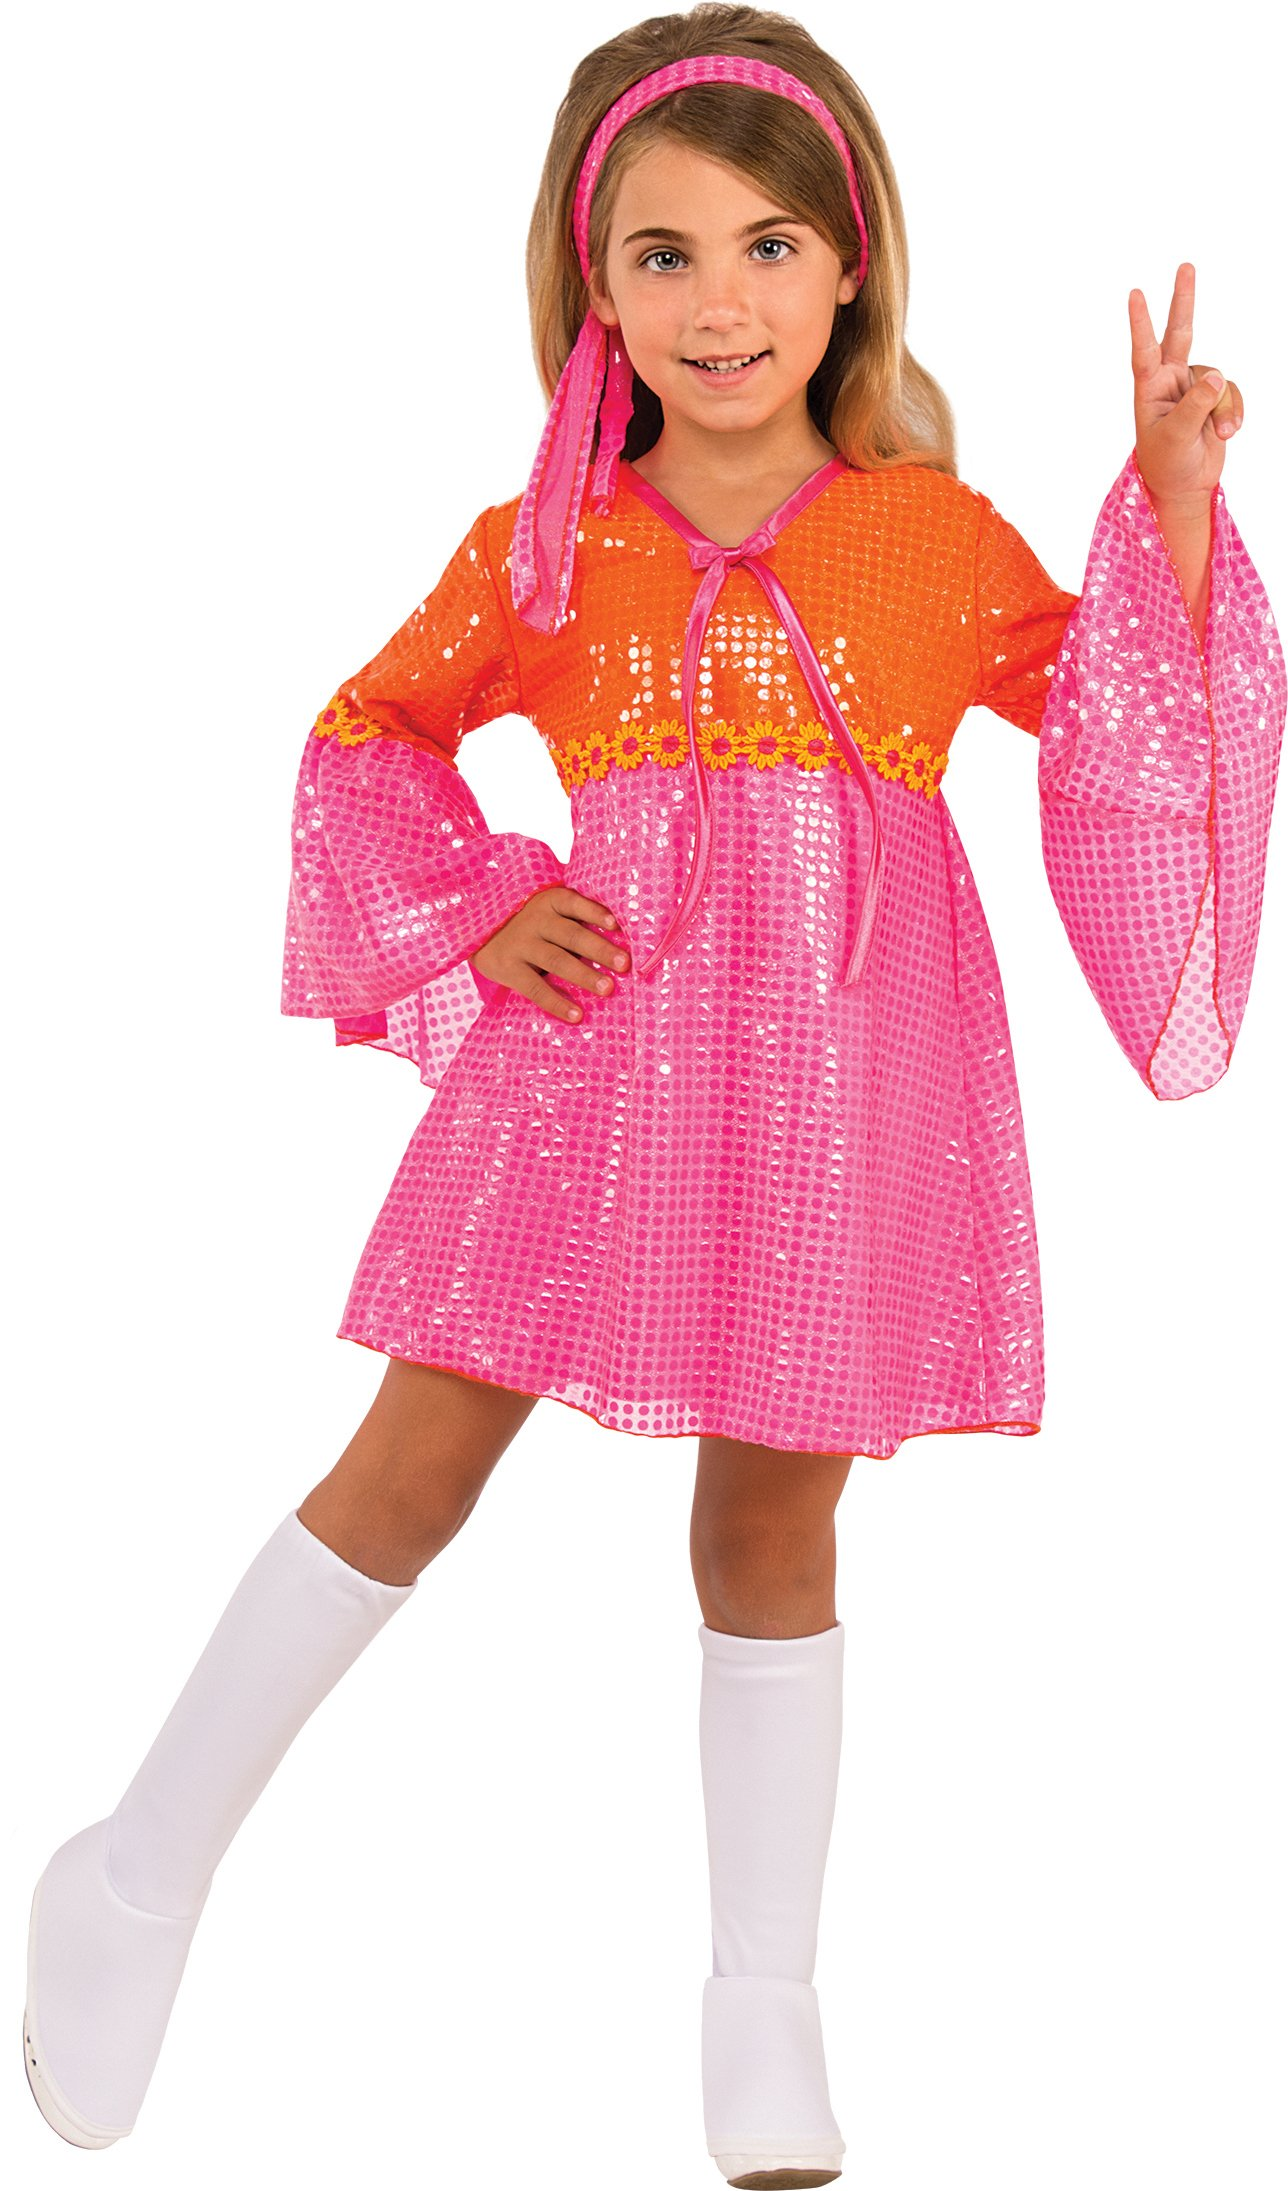 Rubies Costume Child's Go Go Girl Costume, Pink, Small